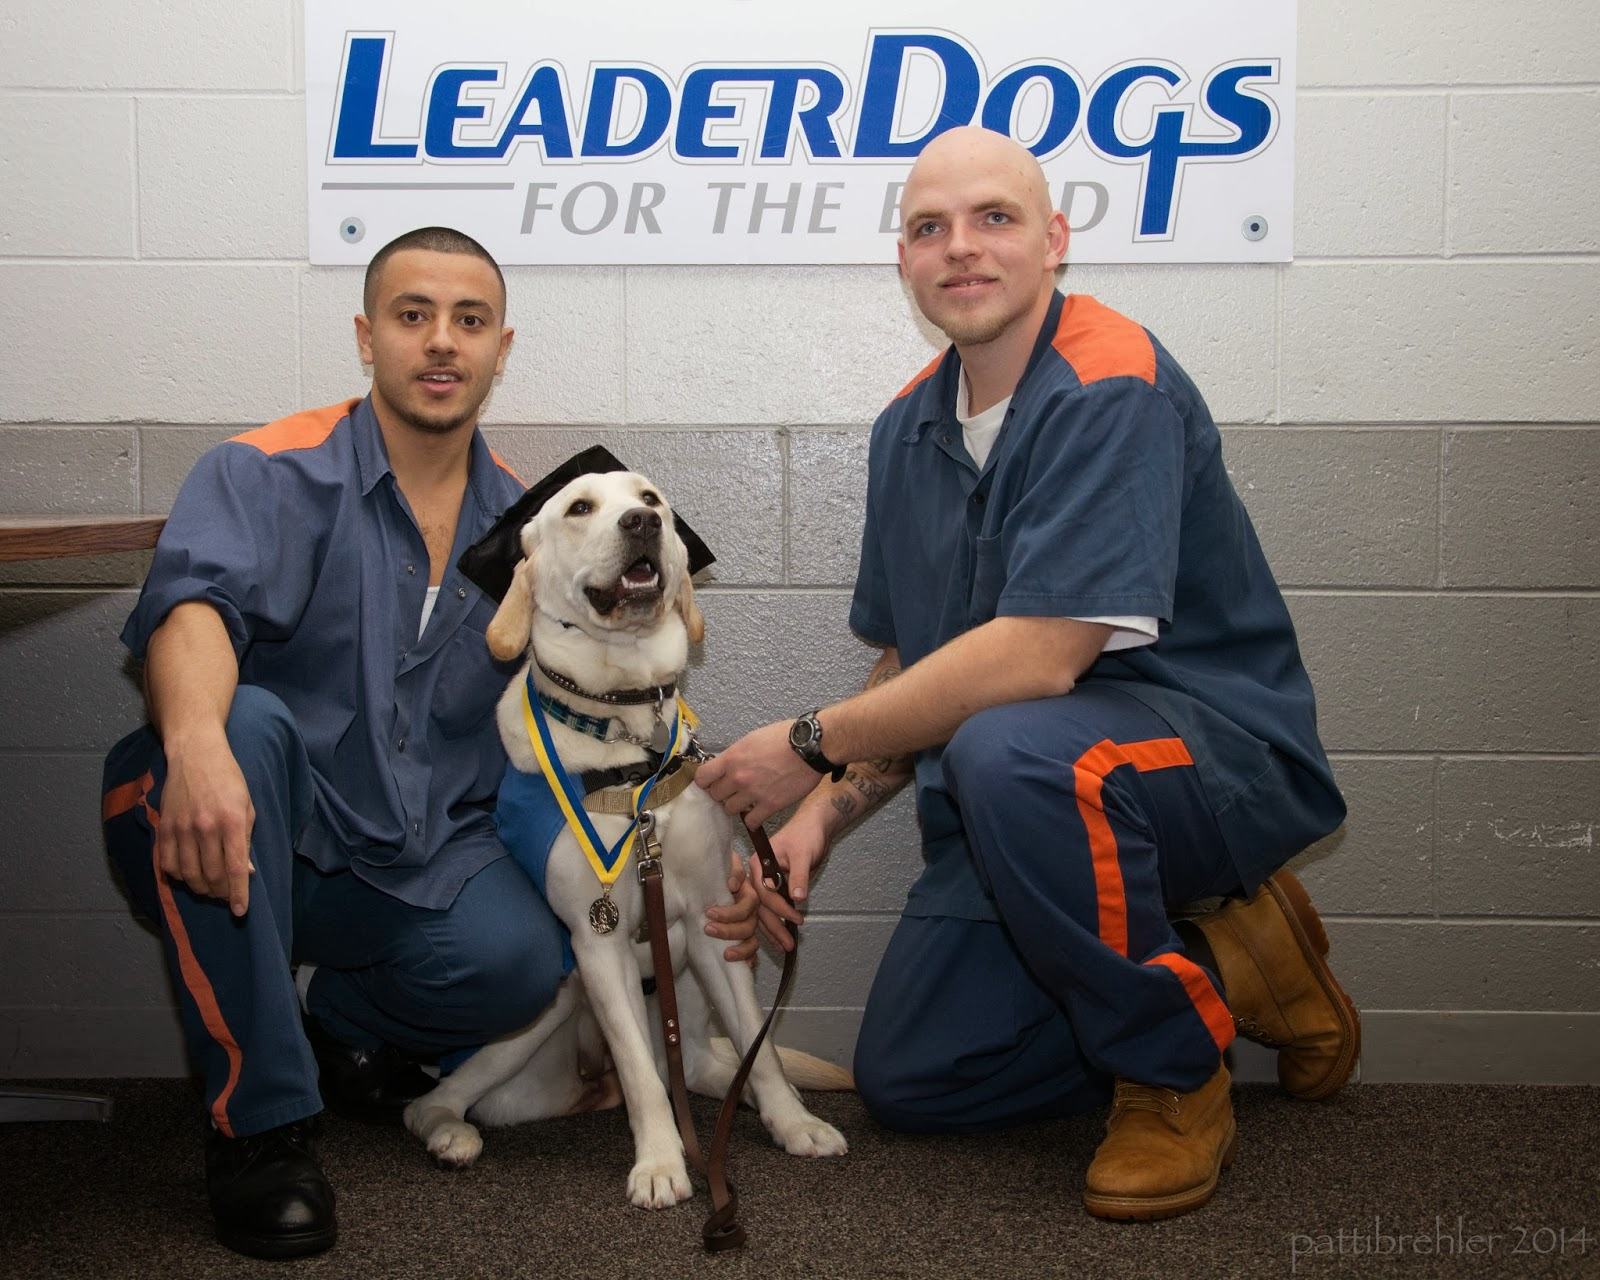 Two men are kneeling on one knee with a yellow lab sitting down between them. The men are wearing blue shirts and blue pants with orange sripes on the shoulders and legs. The dog is wearing a black graduation cap and has a yellow and blue ribbon around its neck wth a medal. A white poster is on the wall behind them that says Leader Dogs for the Blind.